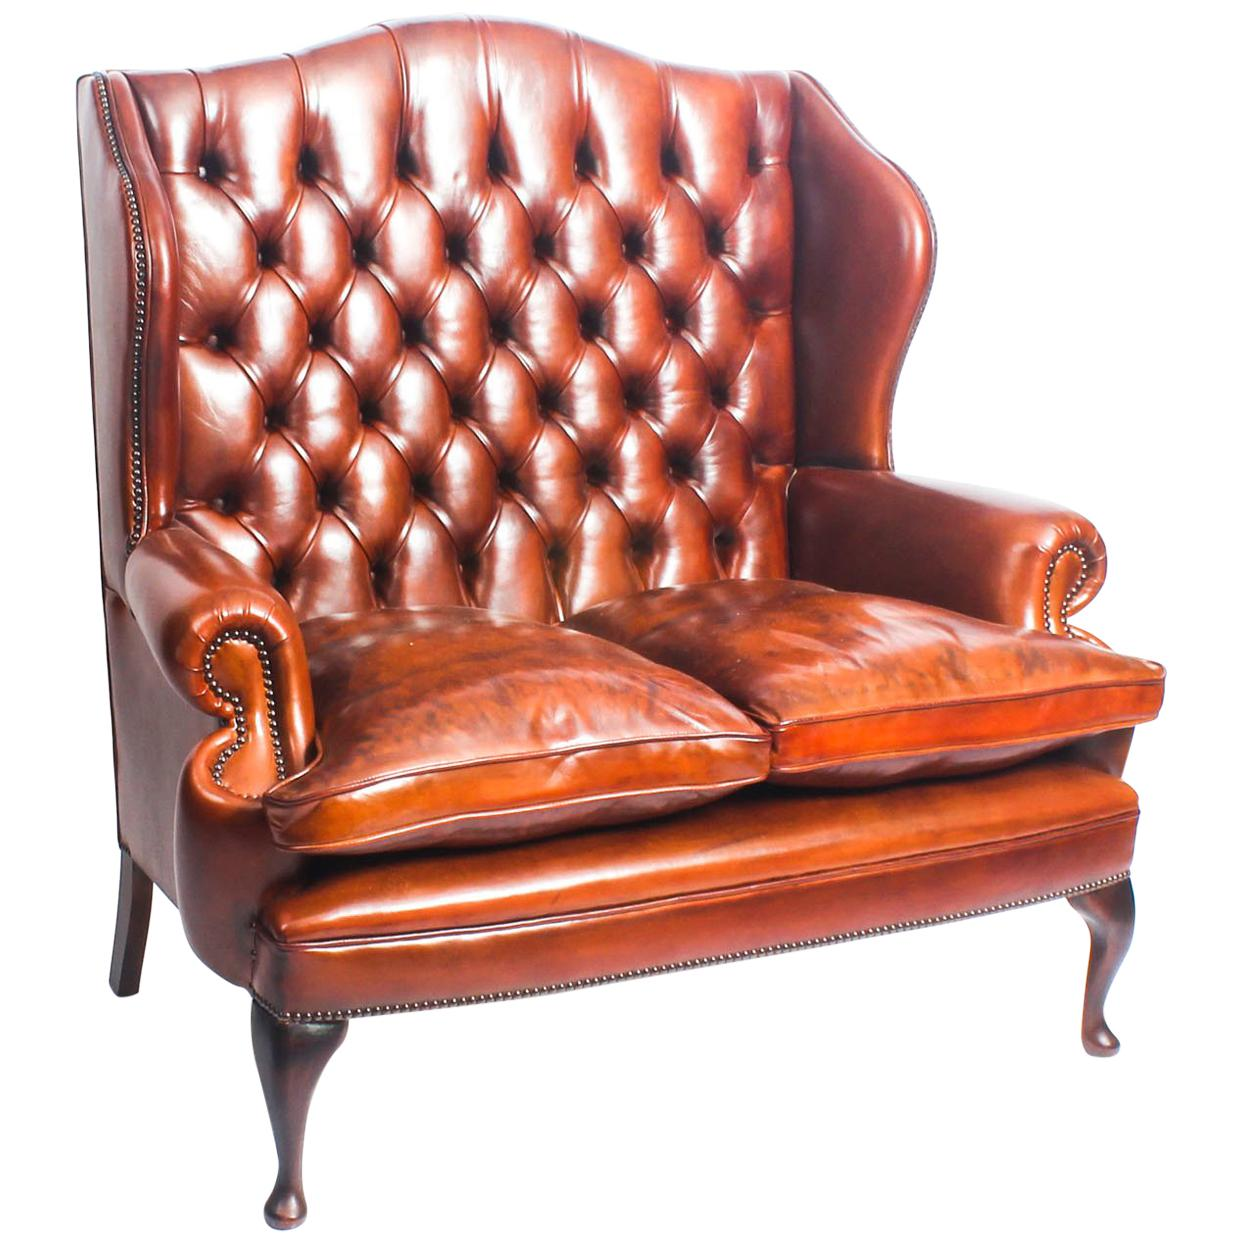 Sofa Queen Anne Bespoke English Leather Queen Anne Club Settee Sofa Burnt Amber